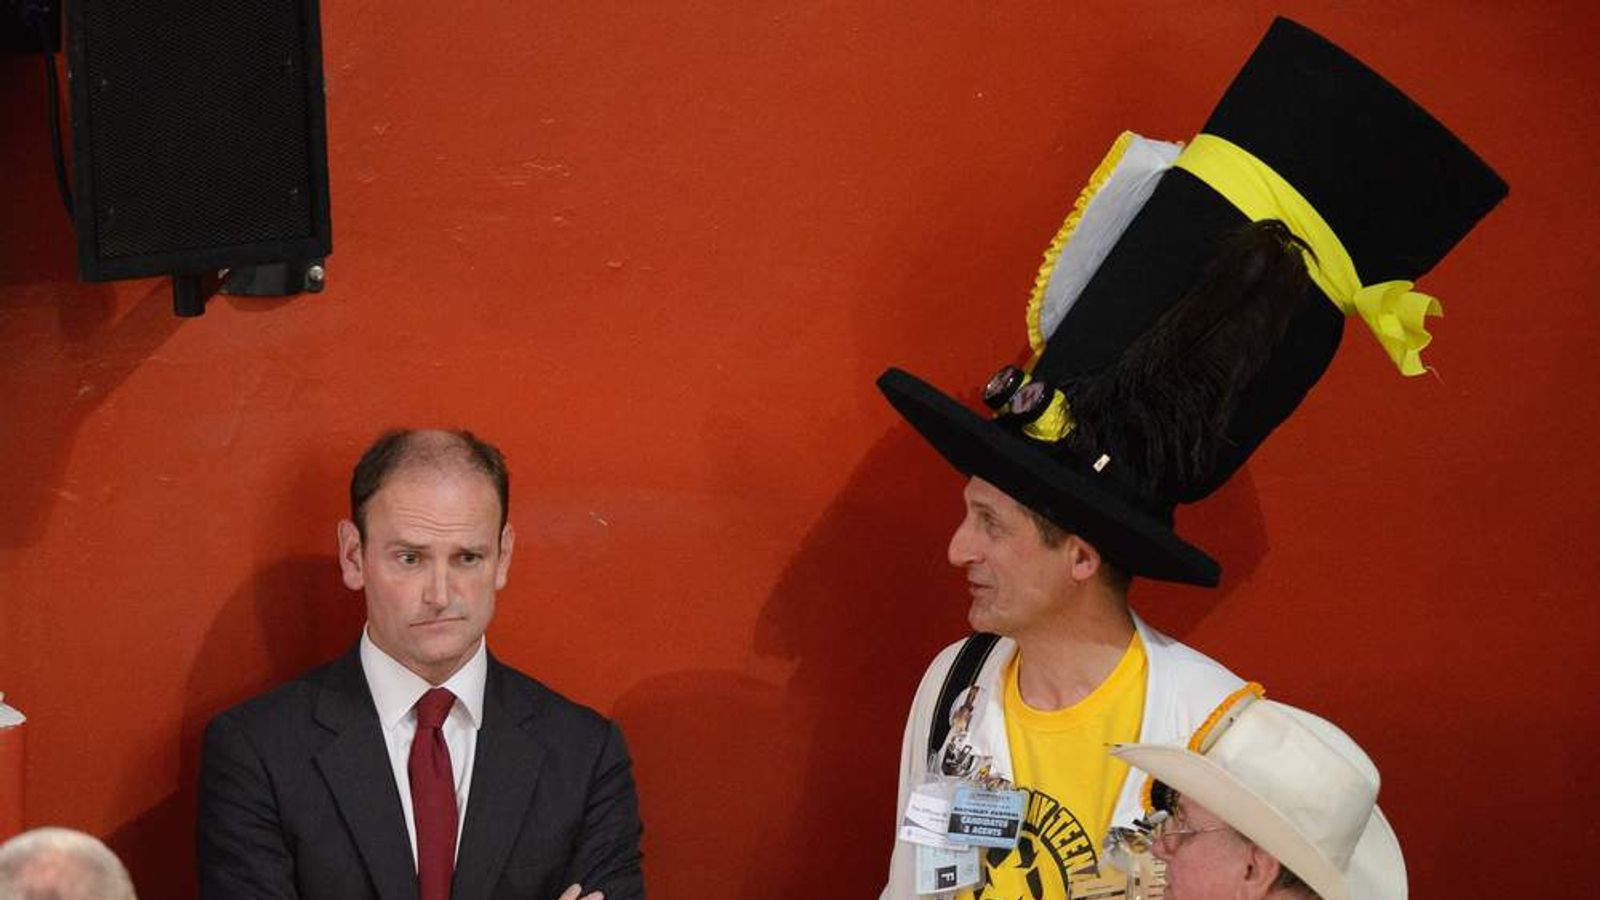 Douglas Carswell and Monster Raving Loony Party